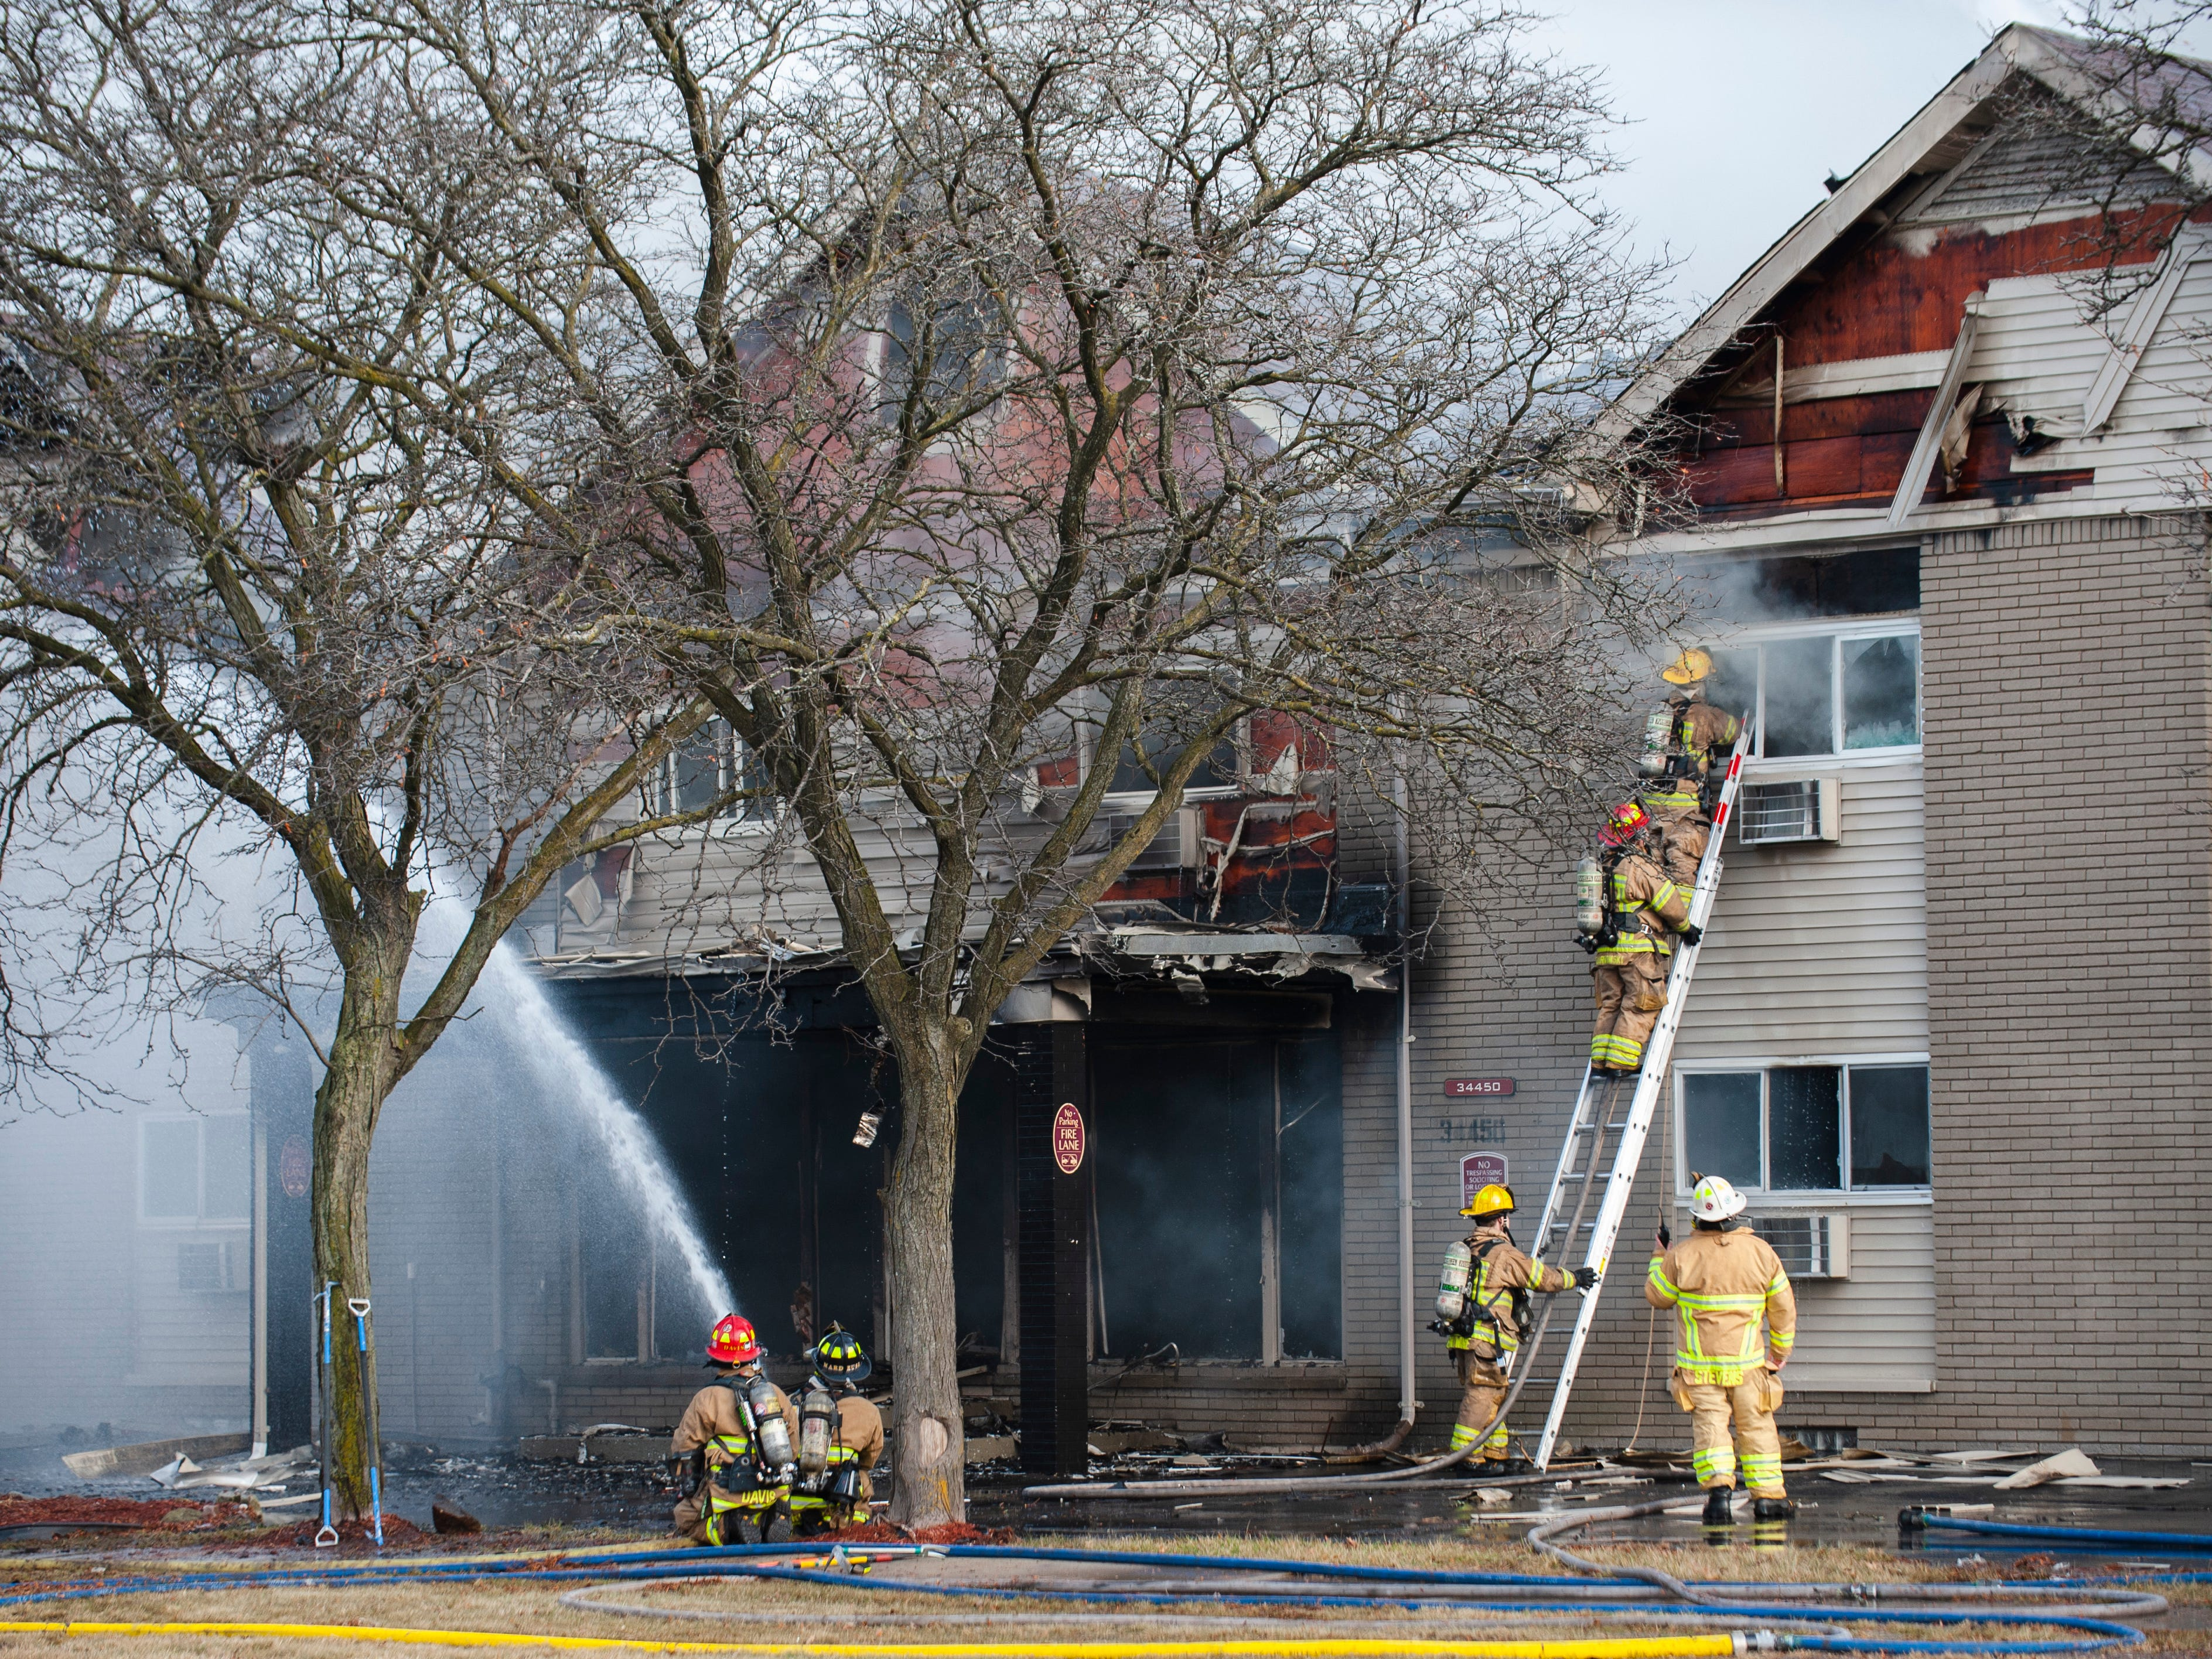 Firefighters douse a huge fire on Christmas morning at the Sterling Troy Apartments in the 34400 block of Dequindre near 15 Mile Rd. in Sterling Heights.